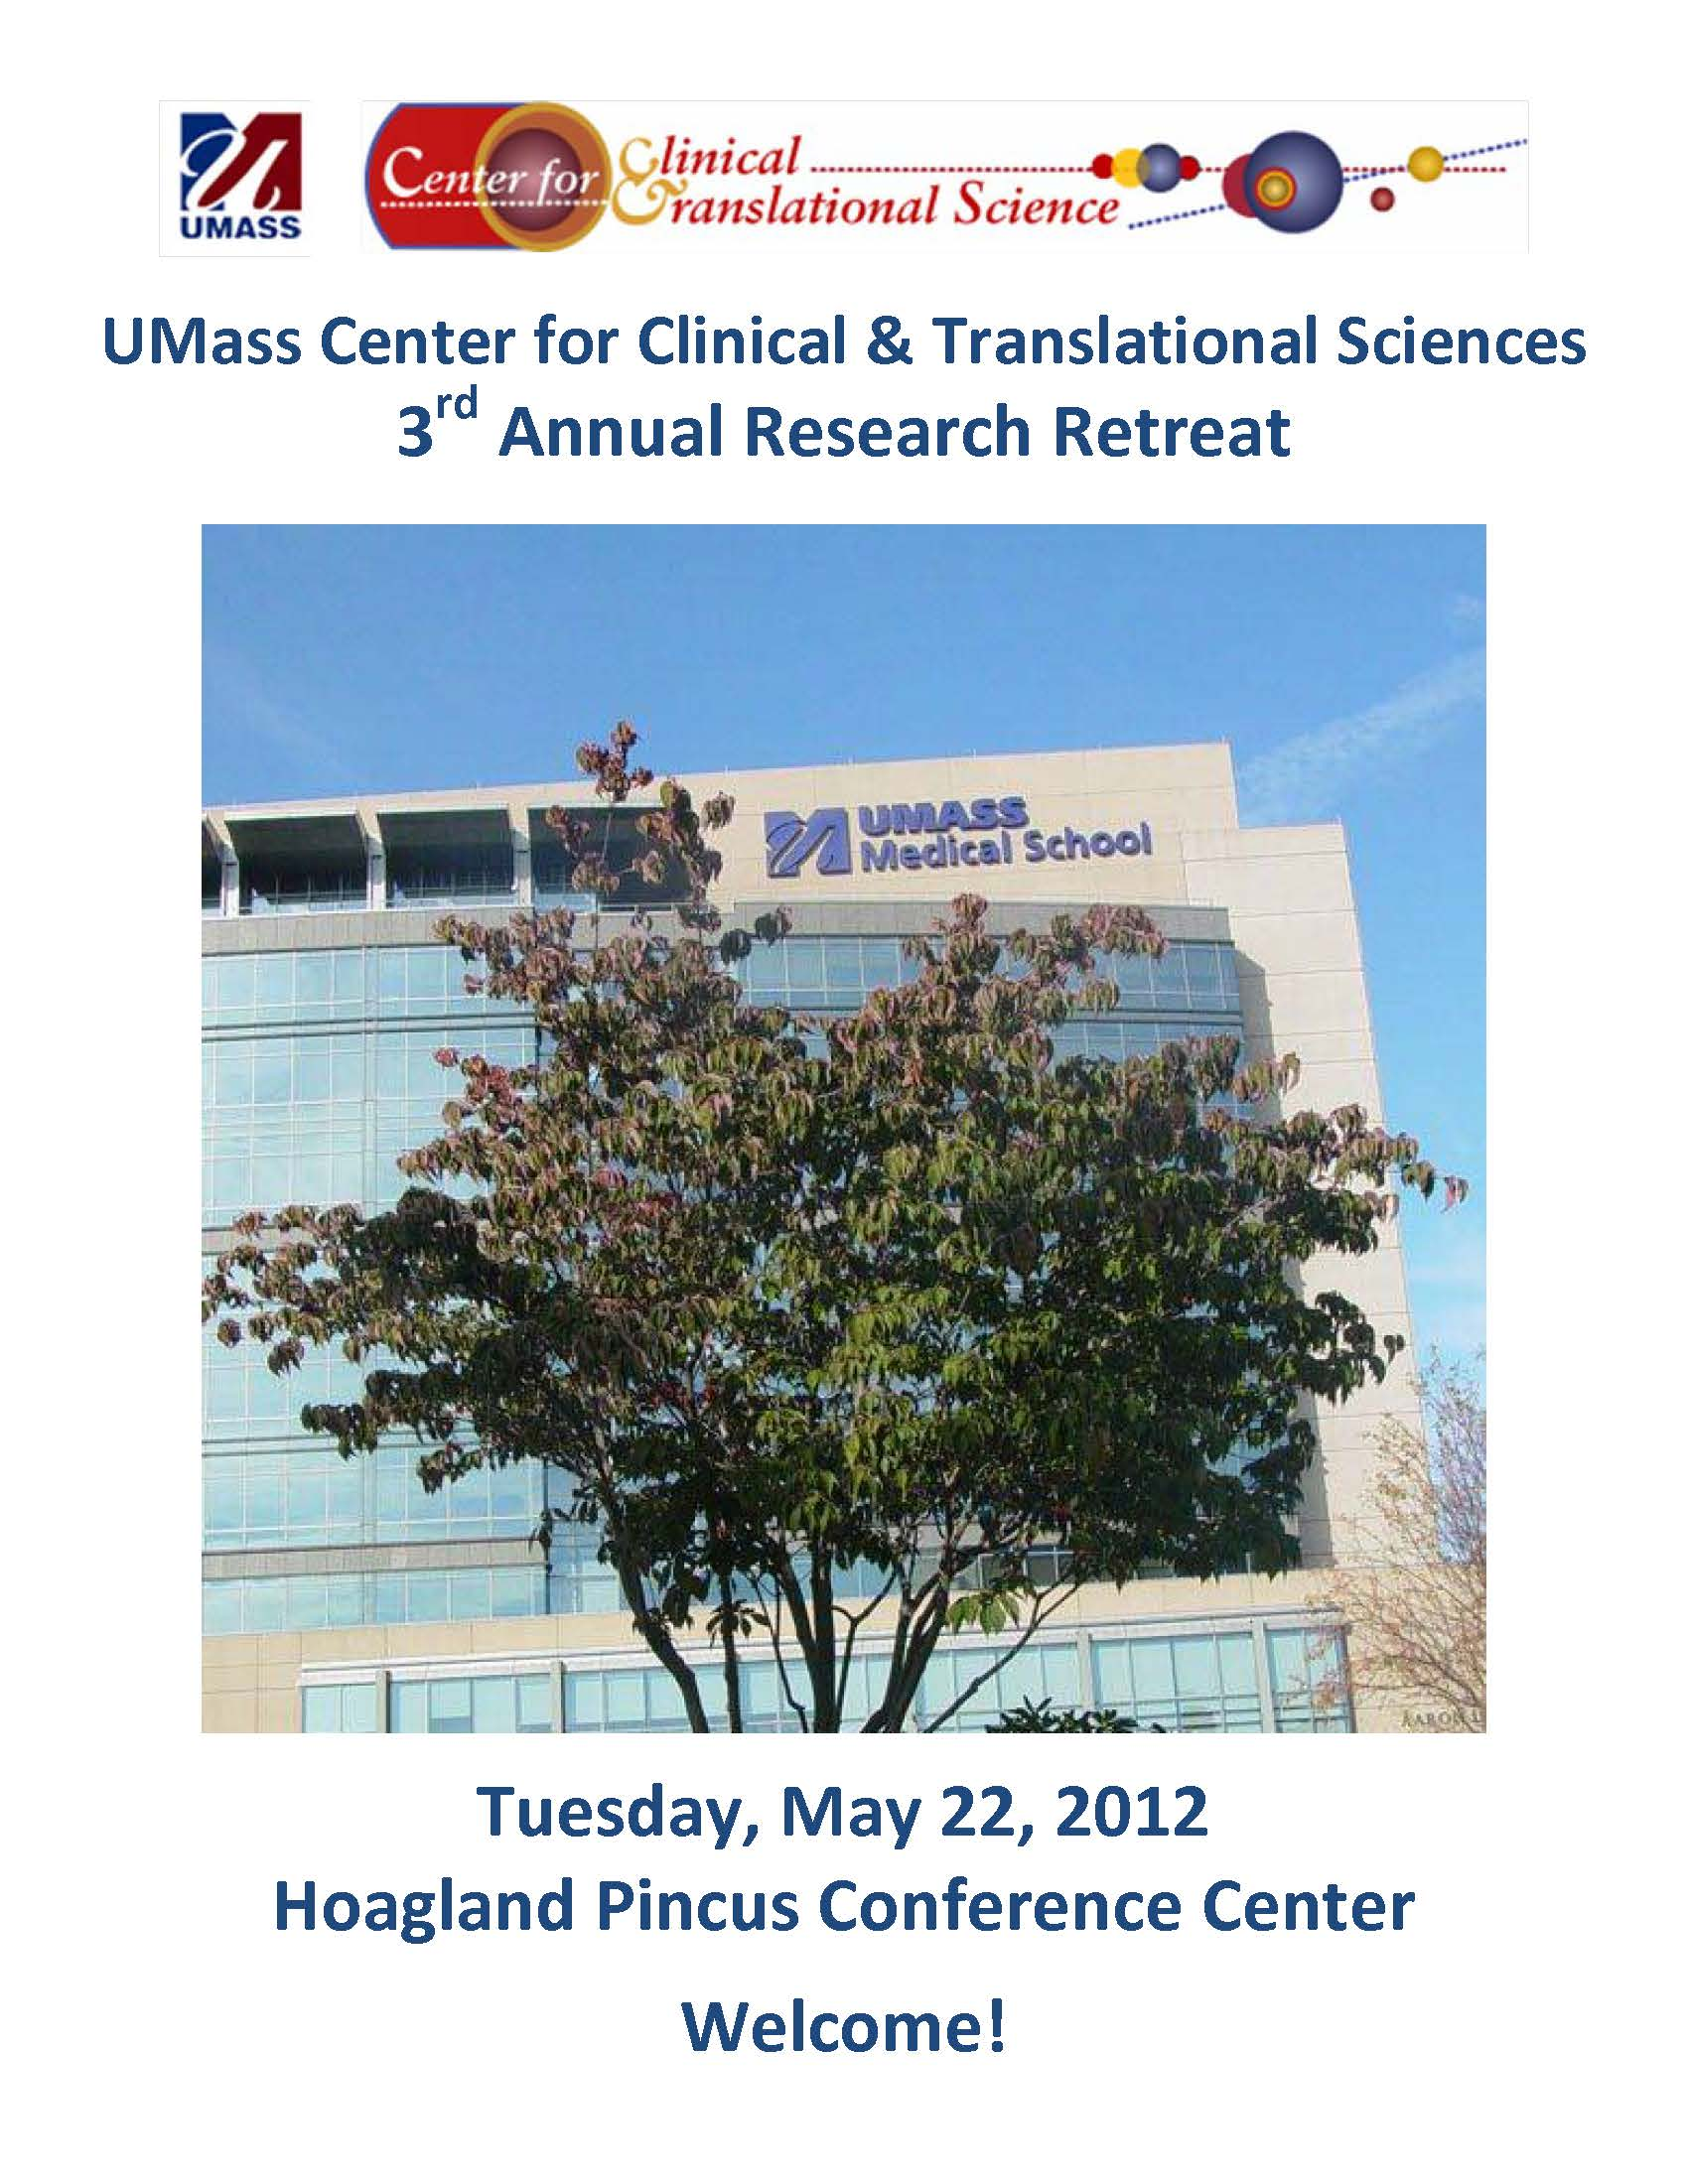 2012 UMass Center for Clinical and Translational Science Research Retreat